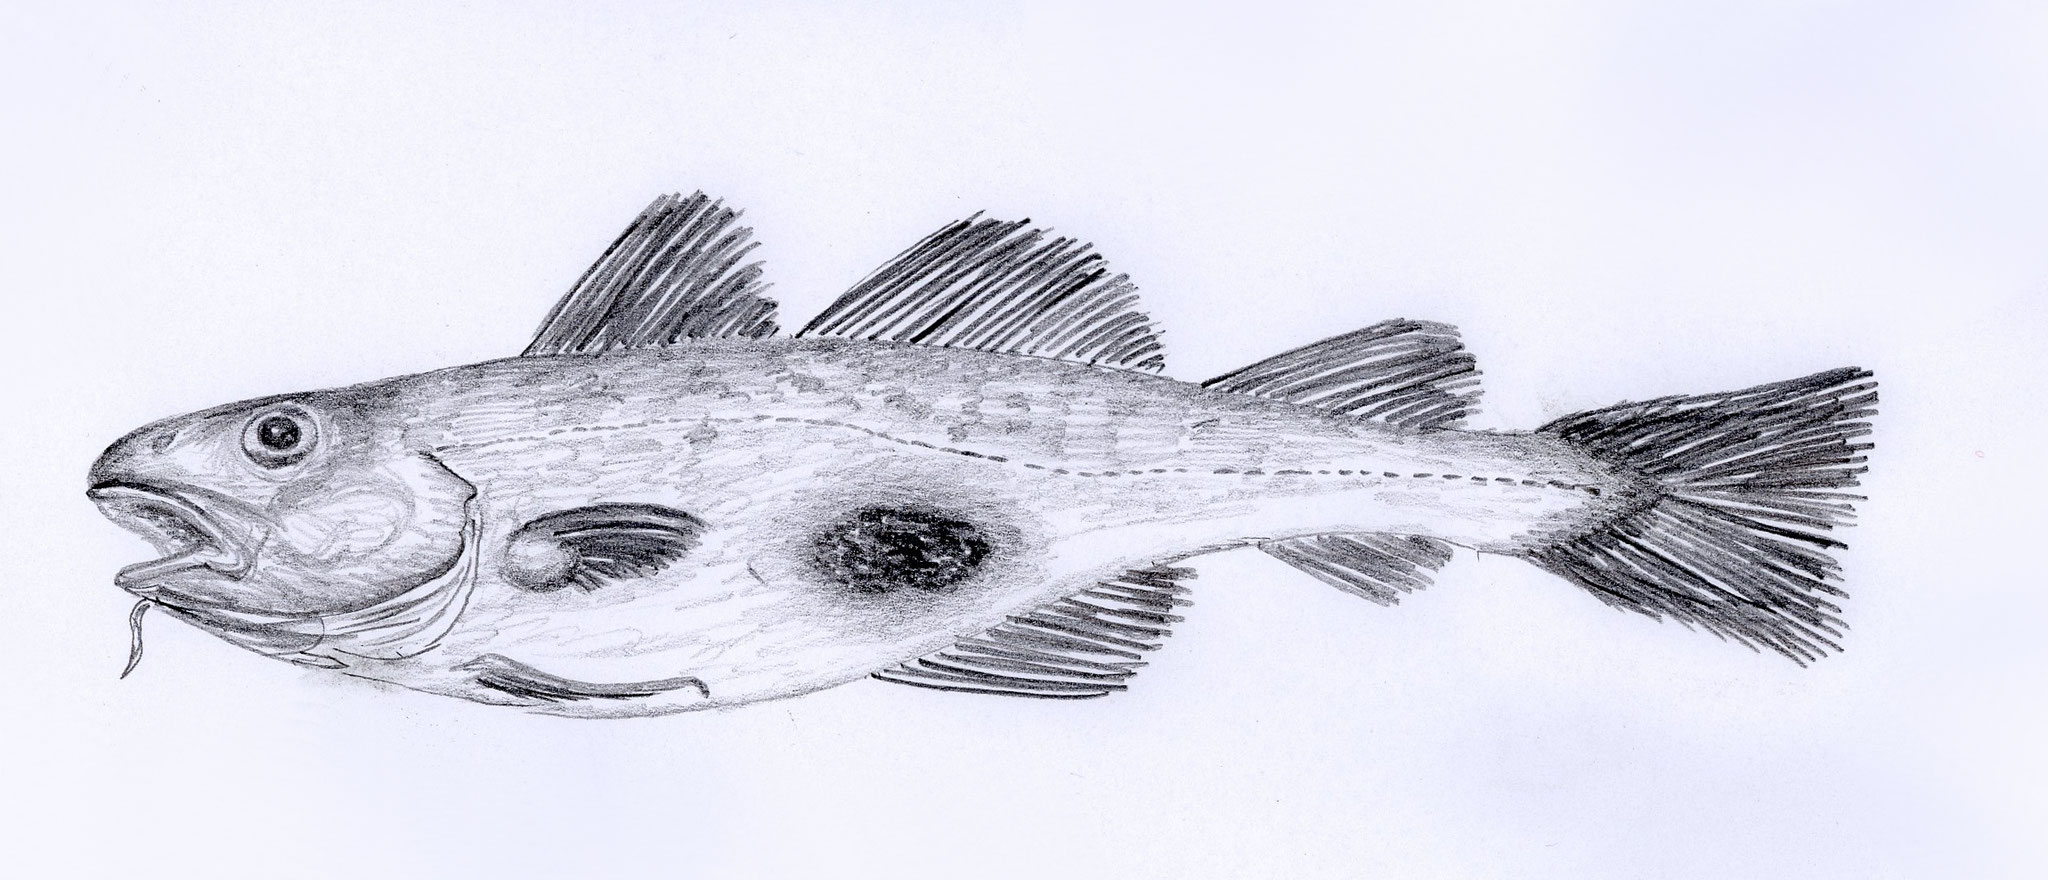 cod with skin ulceration caused by bacteria, 2005, pencil on paper, 30 x 21 cm